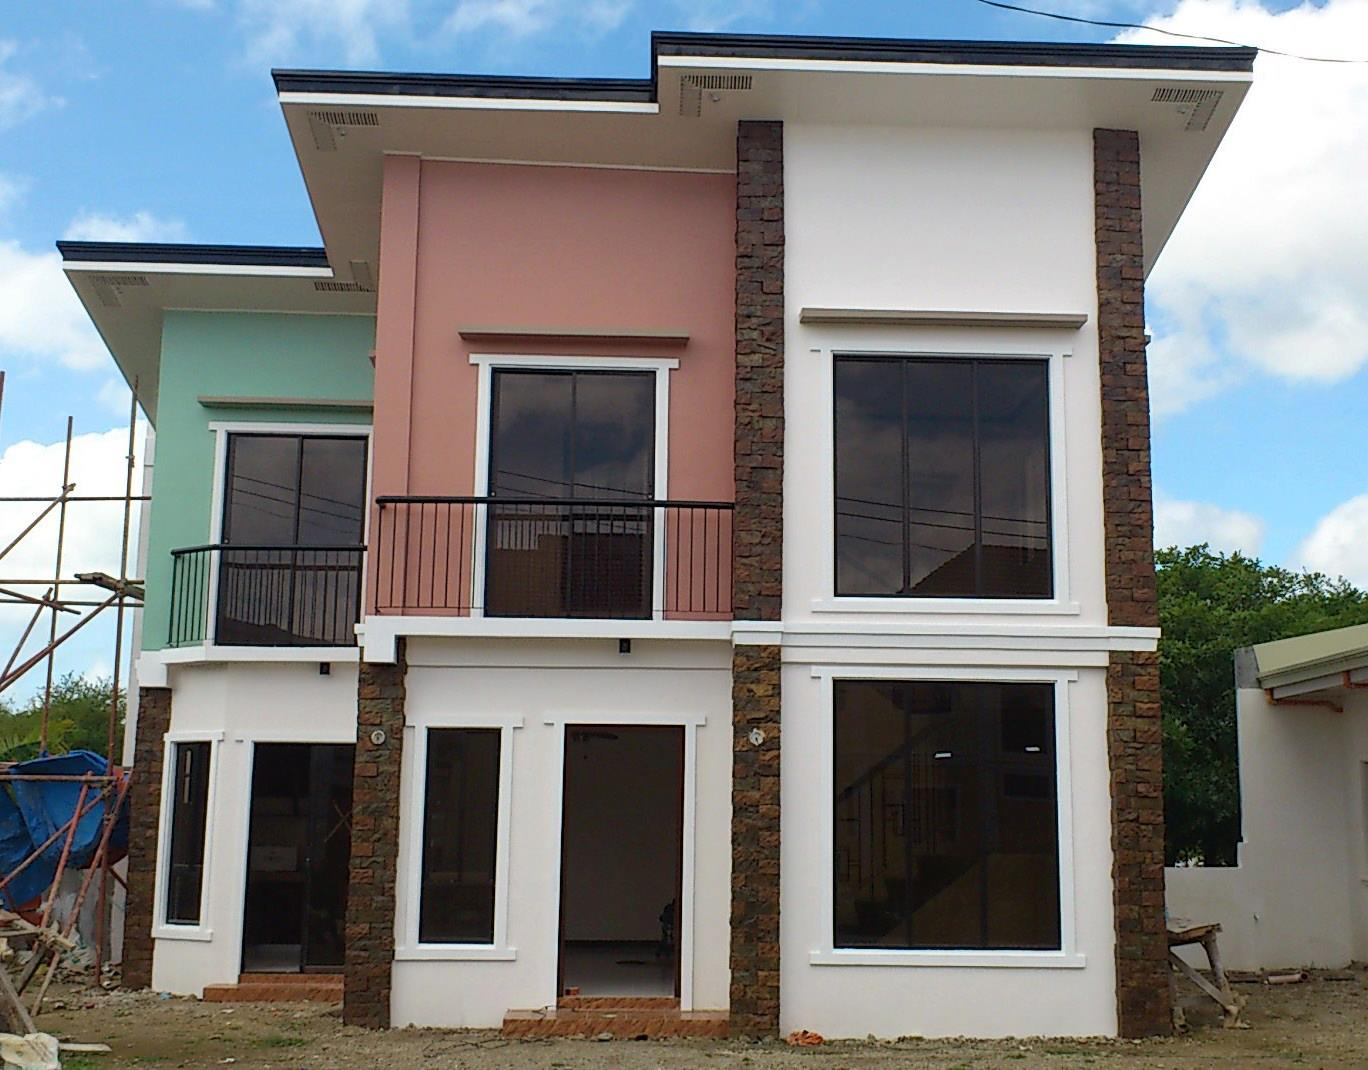 Custom Home Designs Of Royal Residence Iloilo By Pansol Realty And  Development Corporation | Erecre Group Realty, Design And Construction